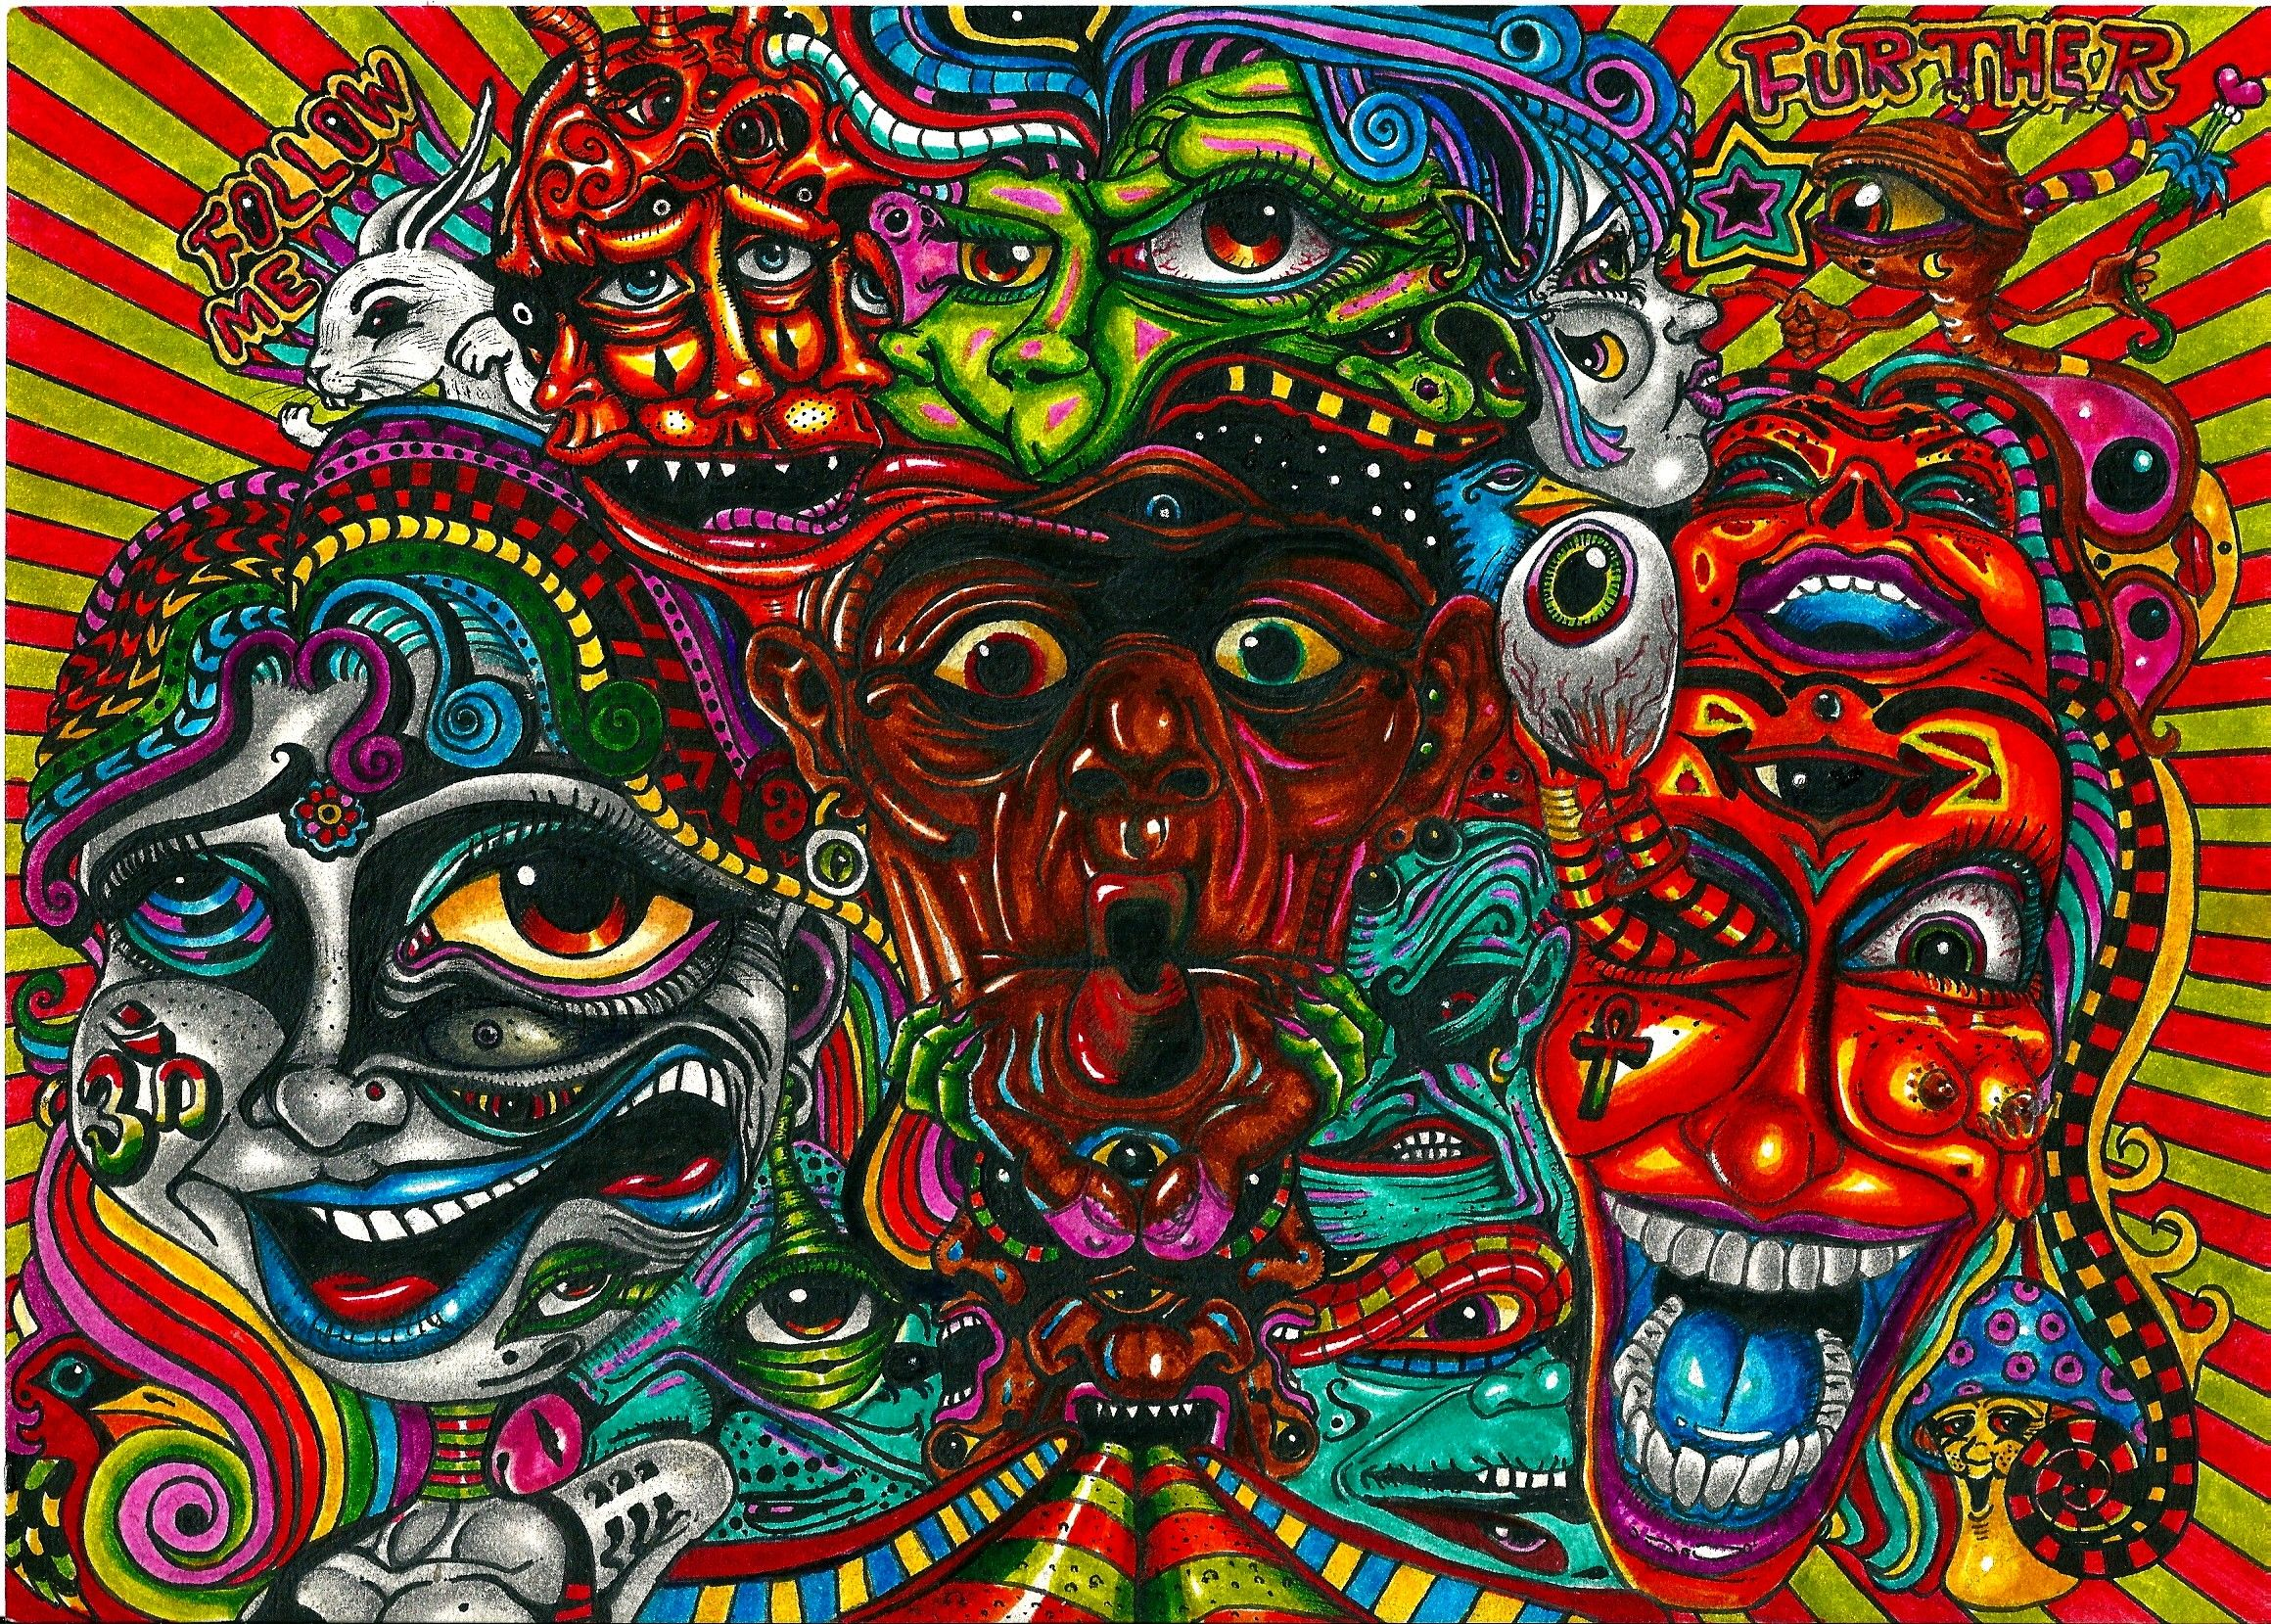 Trippy acid trippy acid art images pics wallpapers pic 14 steves physco art pinterest - Trippy acid pics ...